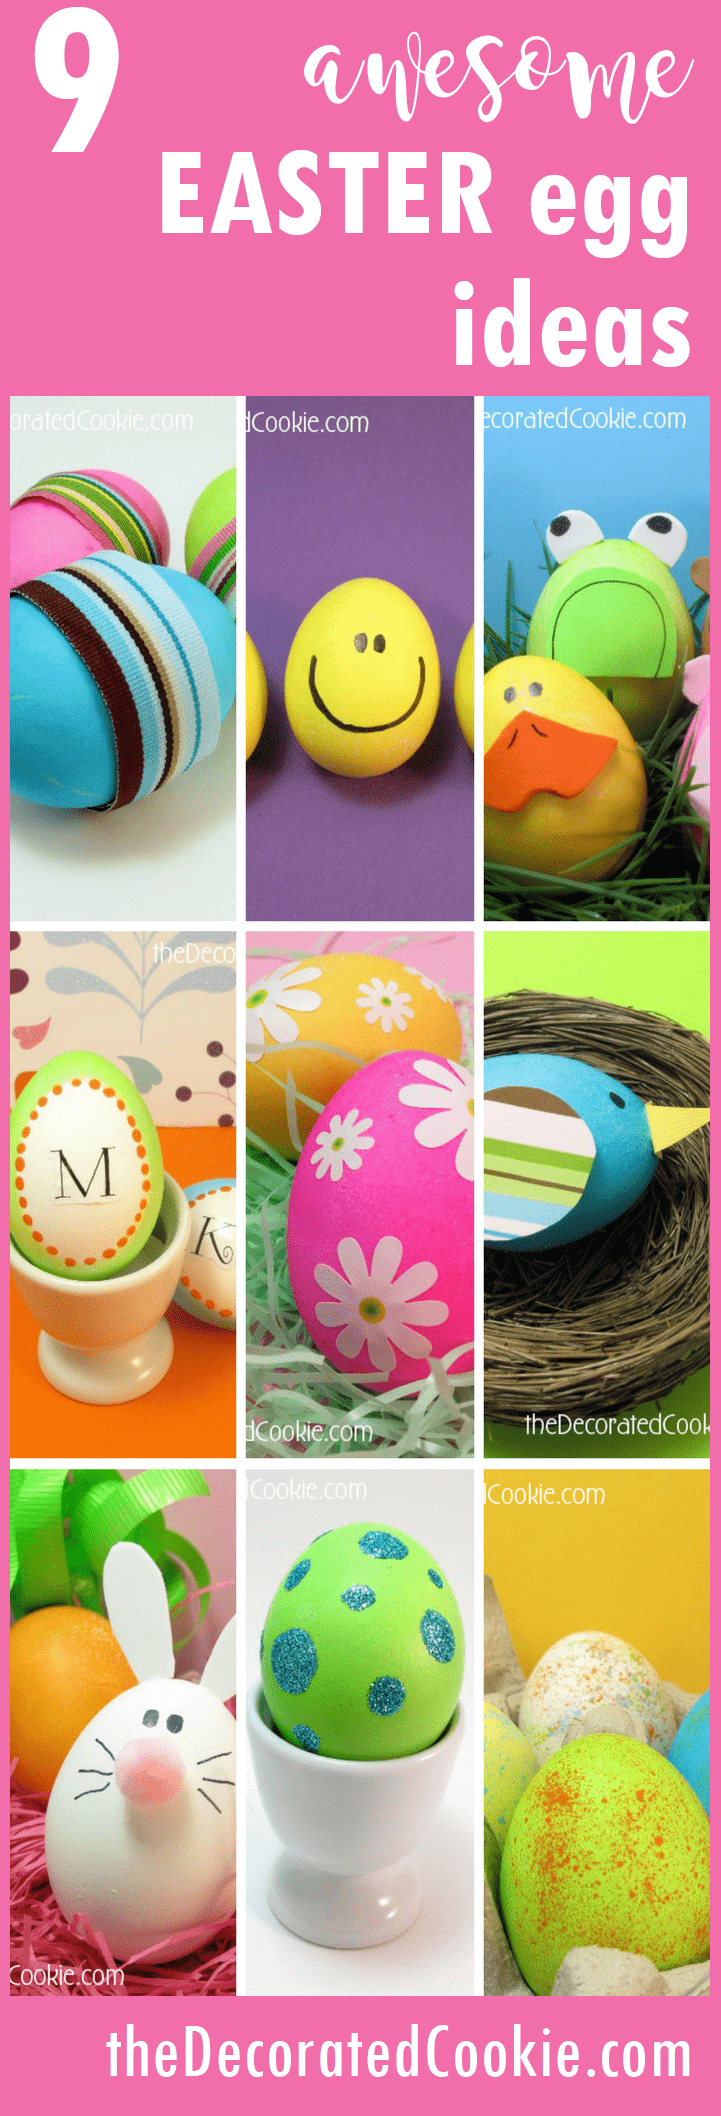 9 awesome Easter egg decorating ideas